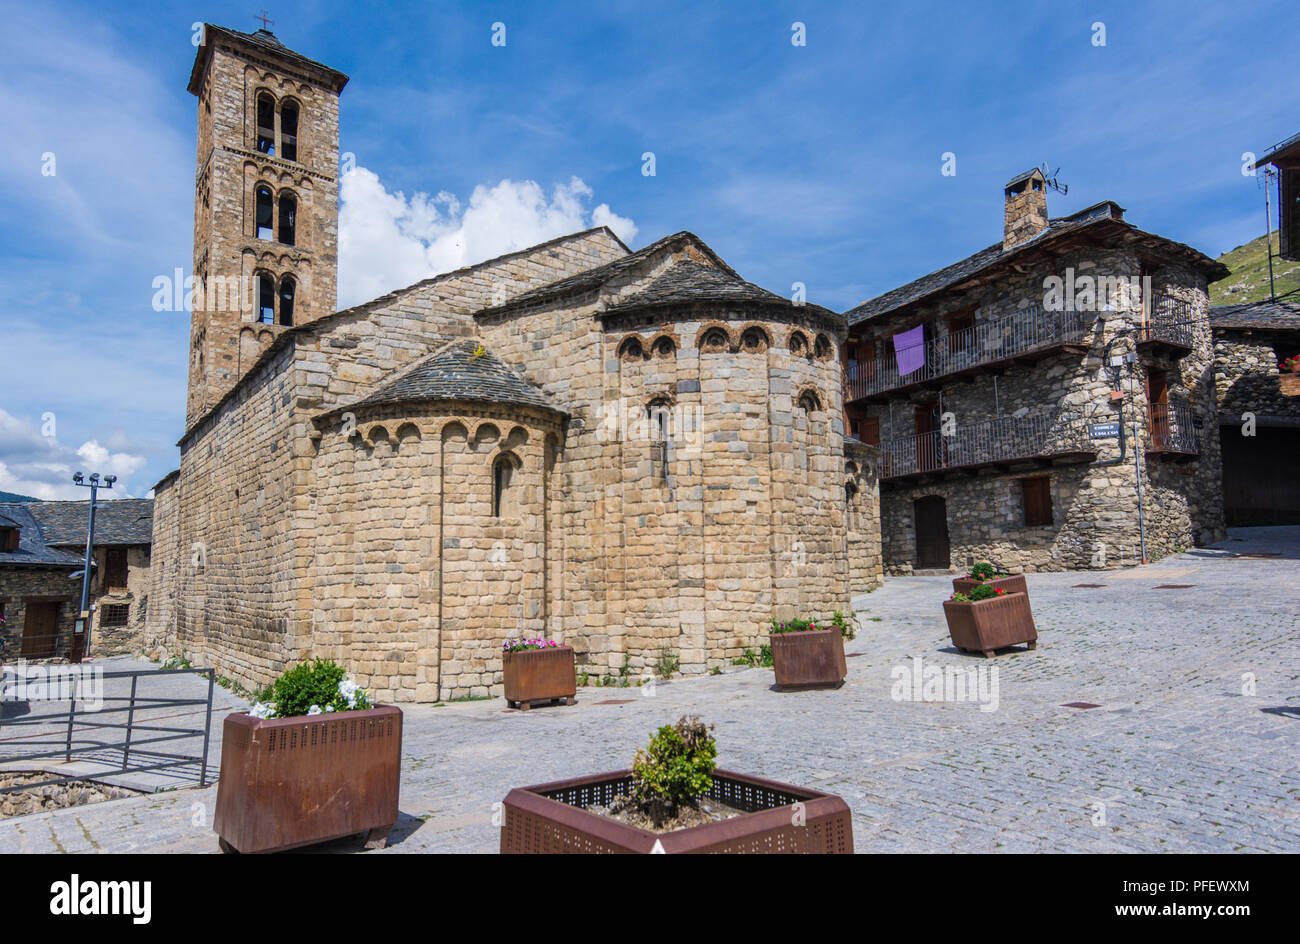 Belfry and church of Santa Maria de Taull, Catalonia, Spain. Catalan Romanesque Churches of the Vall de Boi are declared a UNESCO World Heritage Site  - Stock Image